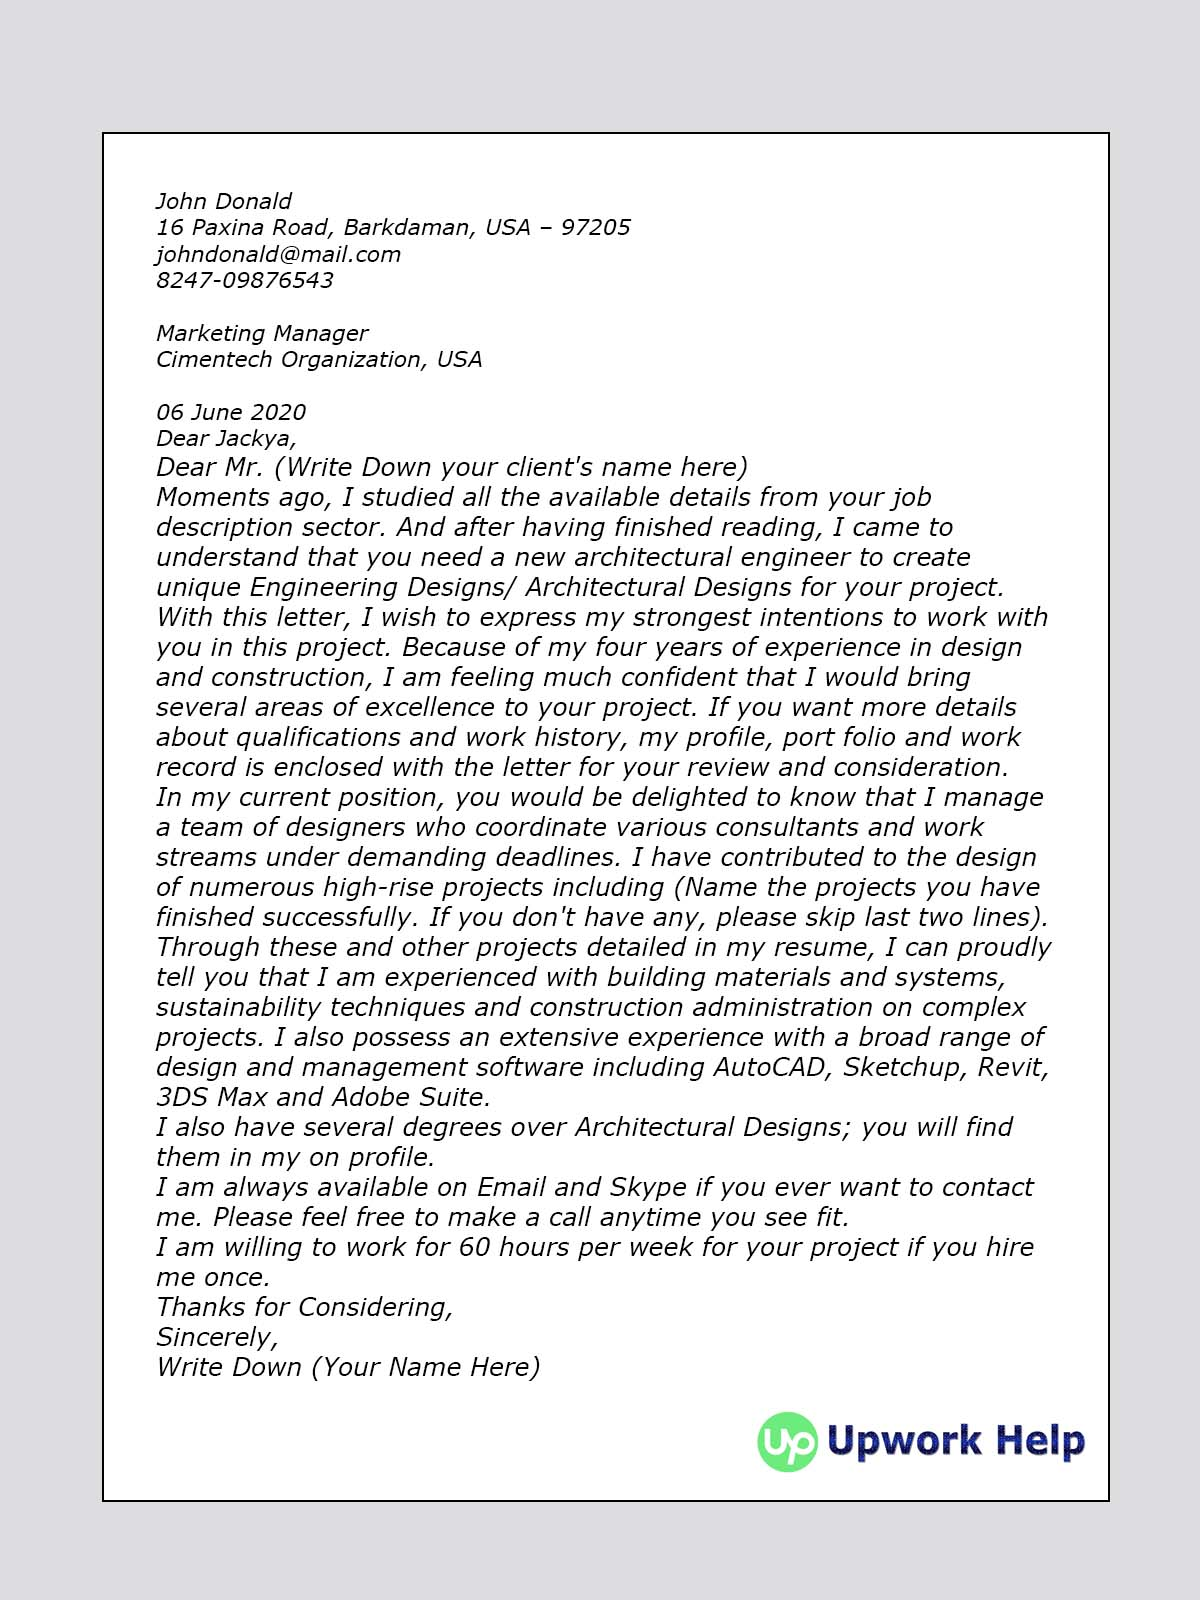 Cover Letter Sample for Engineering Design/ Architectural Design ...